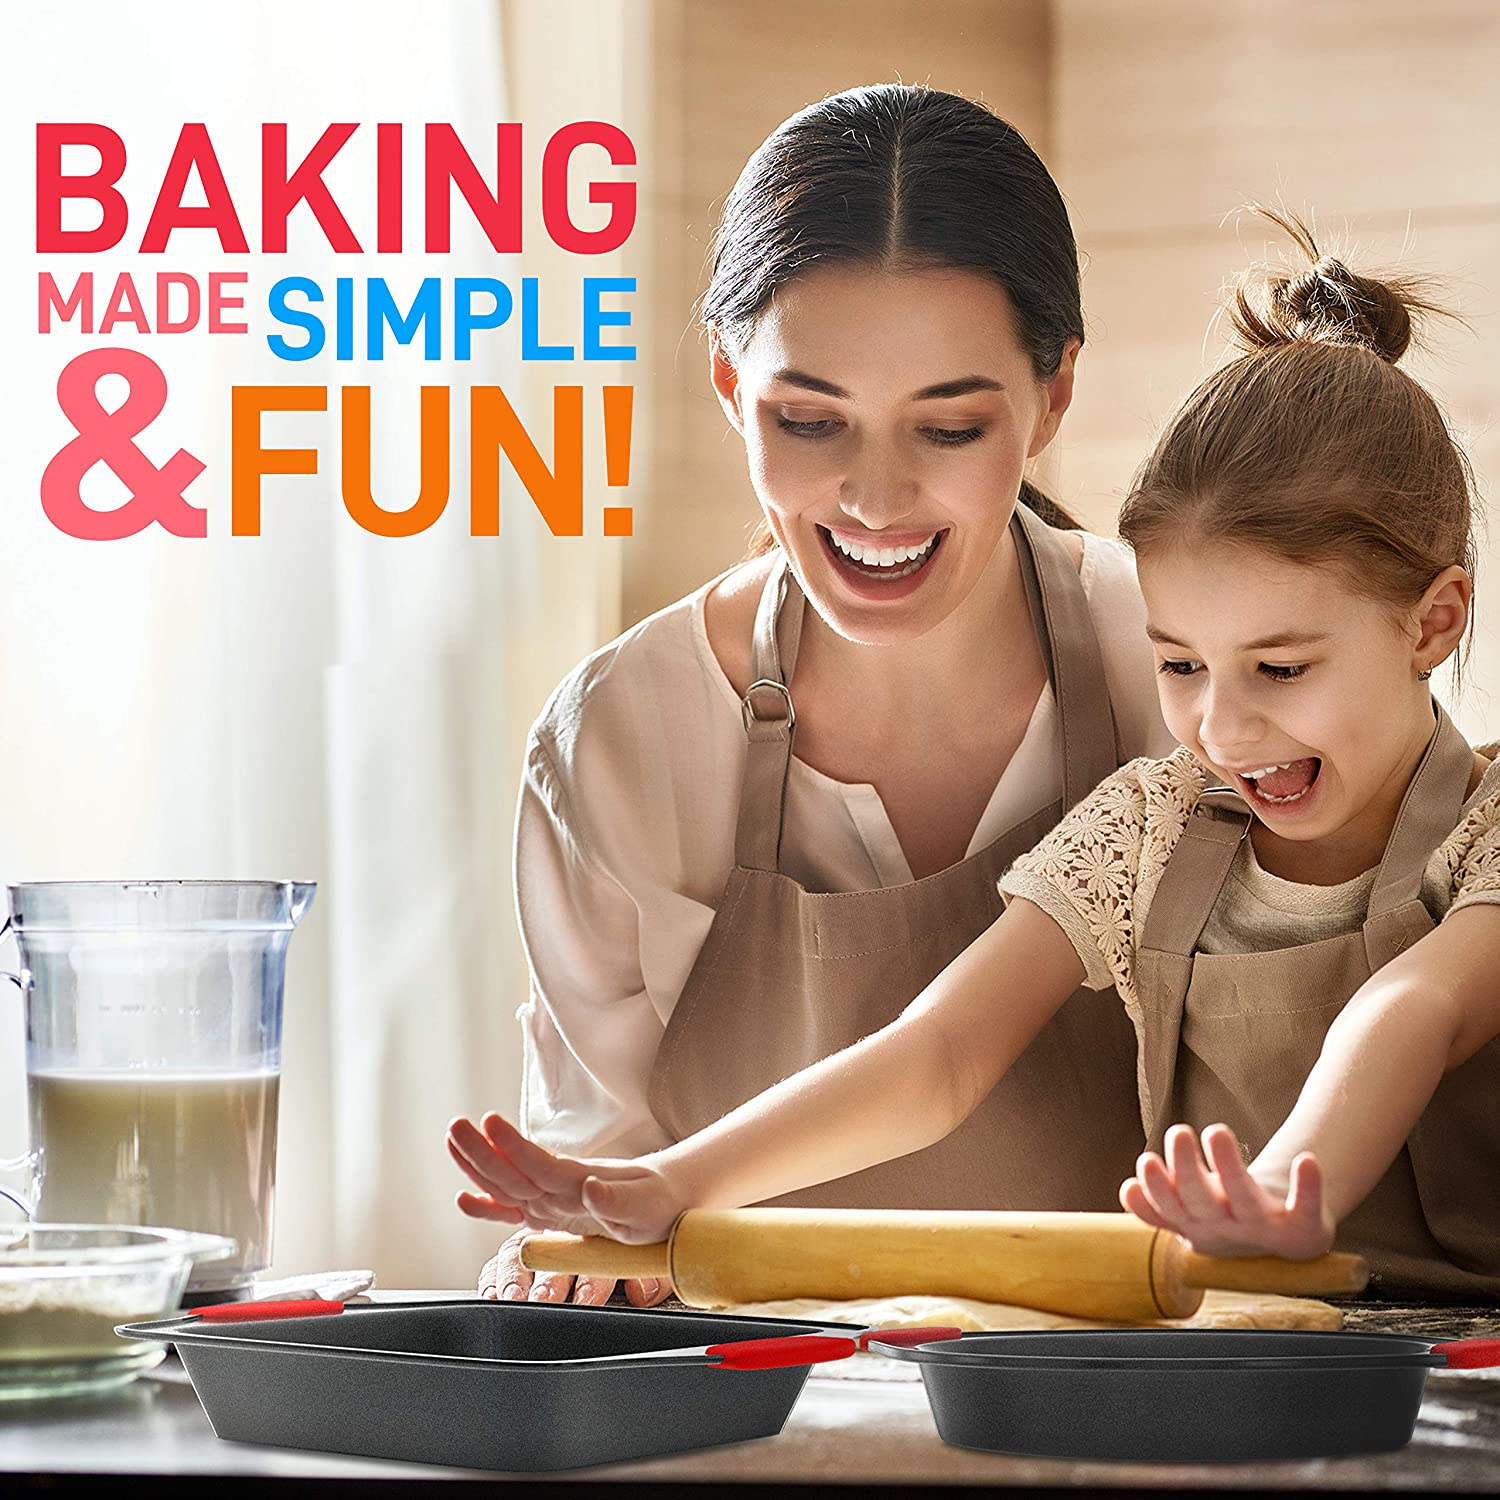 Black NutriChef NCSBS3S Kitchen Oven Baking Pans-Deluxe Nonstick Gray Coating Inside /& Outside Carbon Steel Bakeware Set with Red Silicone Handles 3-Pieces